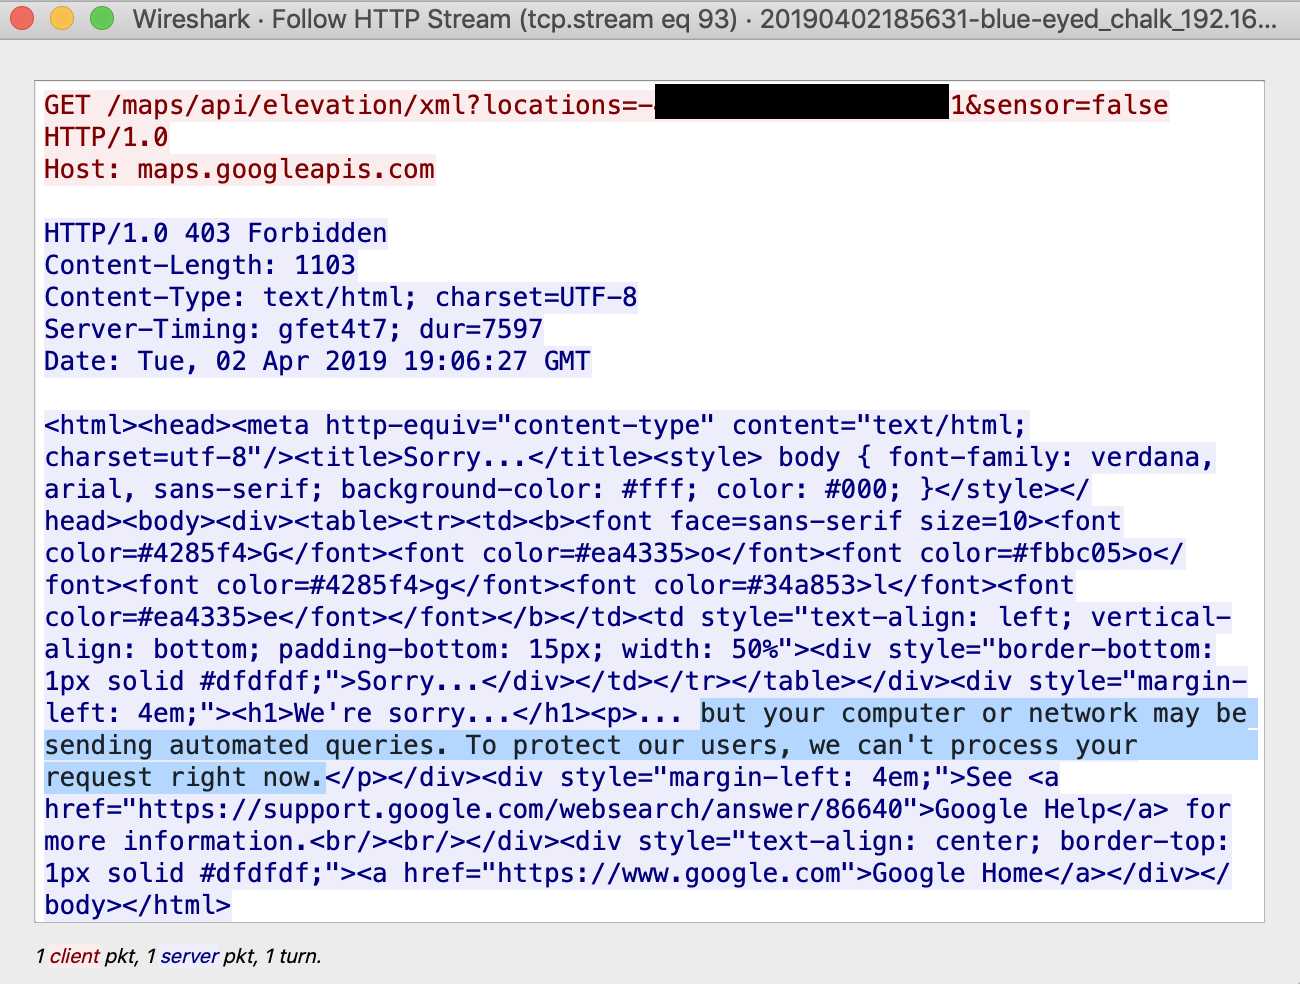 Figure 5 - Response to the Google APIs location request. It shows how Google actually banned the requests.